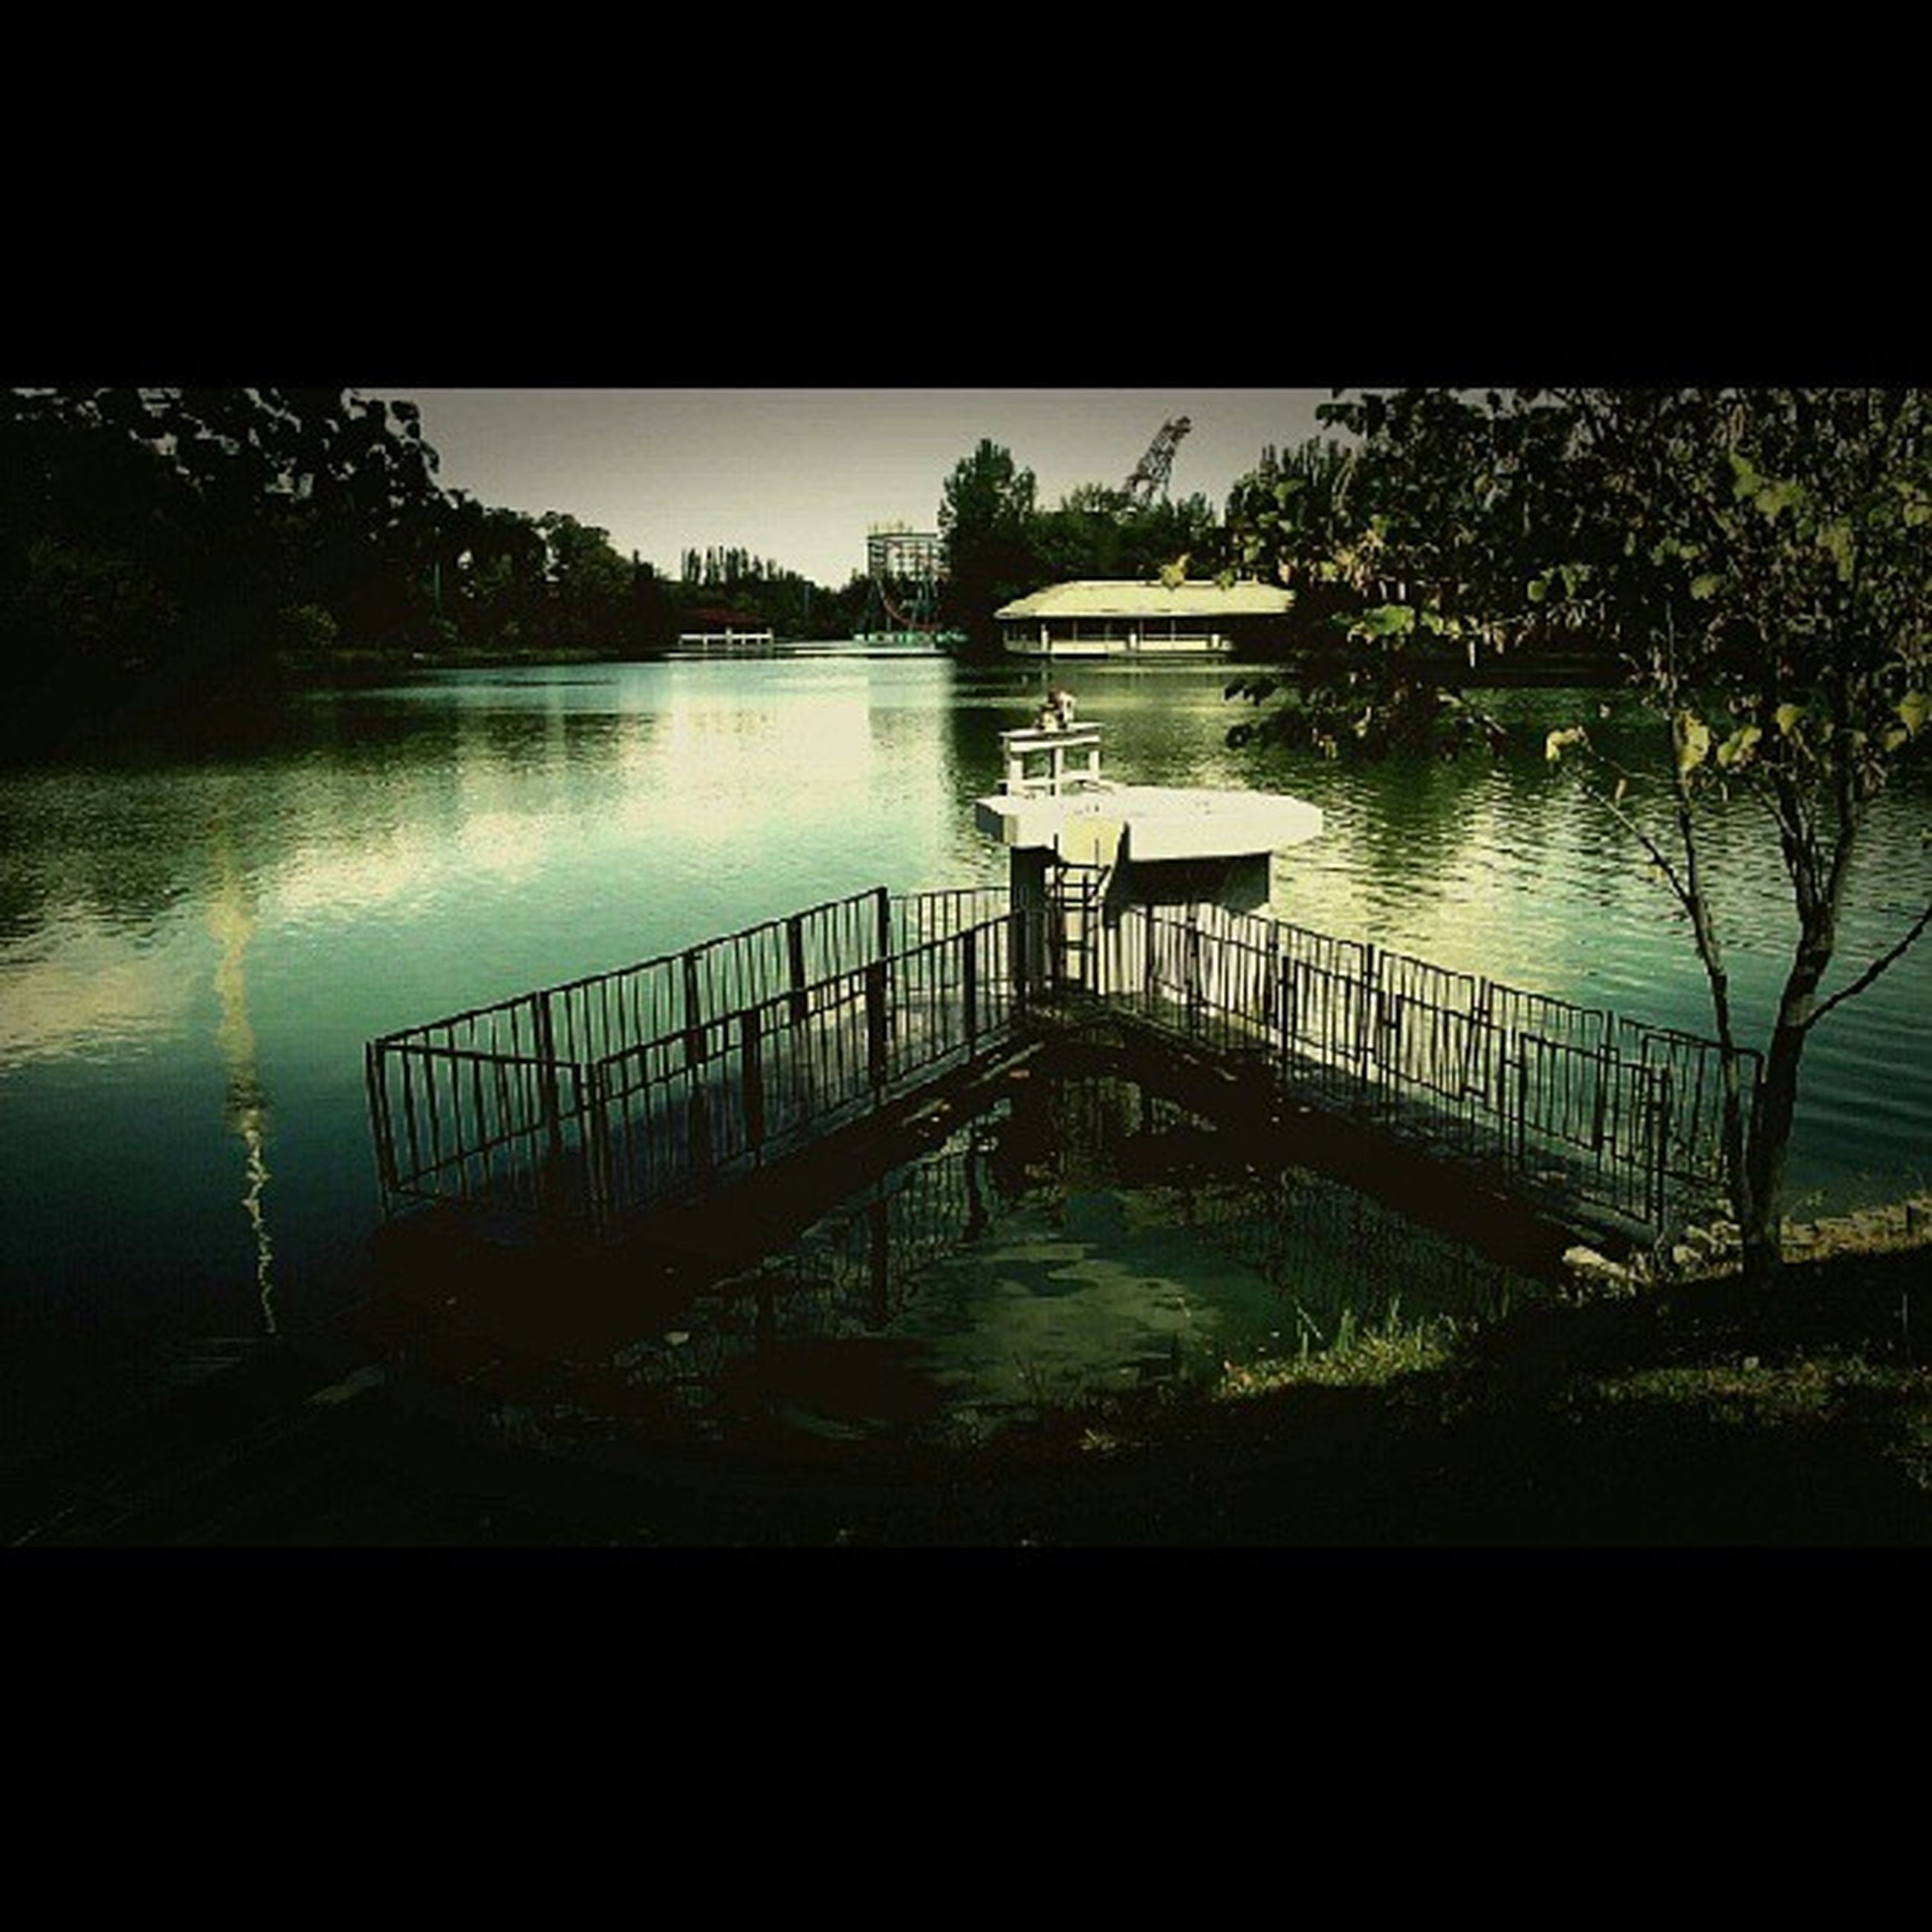 water, tree, lake, tranquility, reflection, tranquil scene, railing, nature, beauty in nature, scenics, river, growth, auto post production filter, idyllic, pier, silhouette, plant, no people, day, outdoors